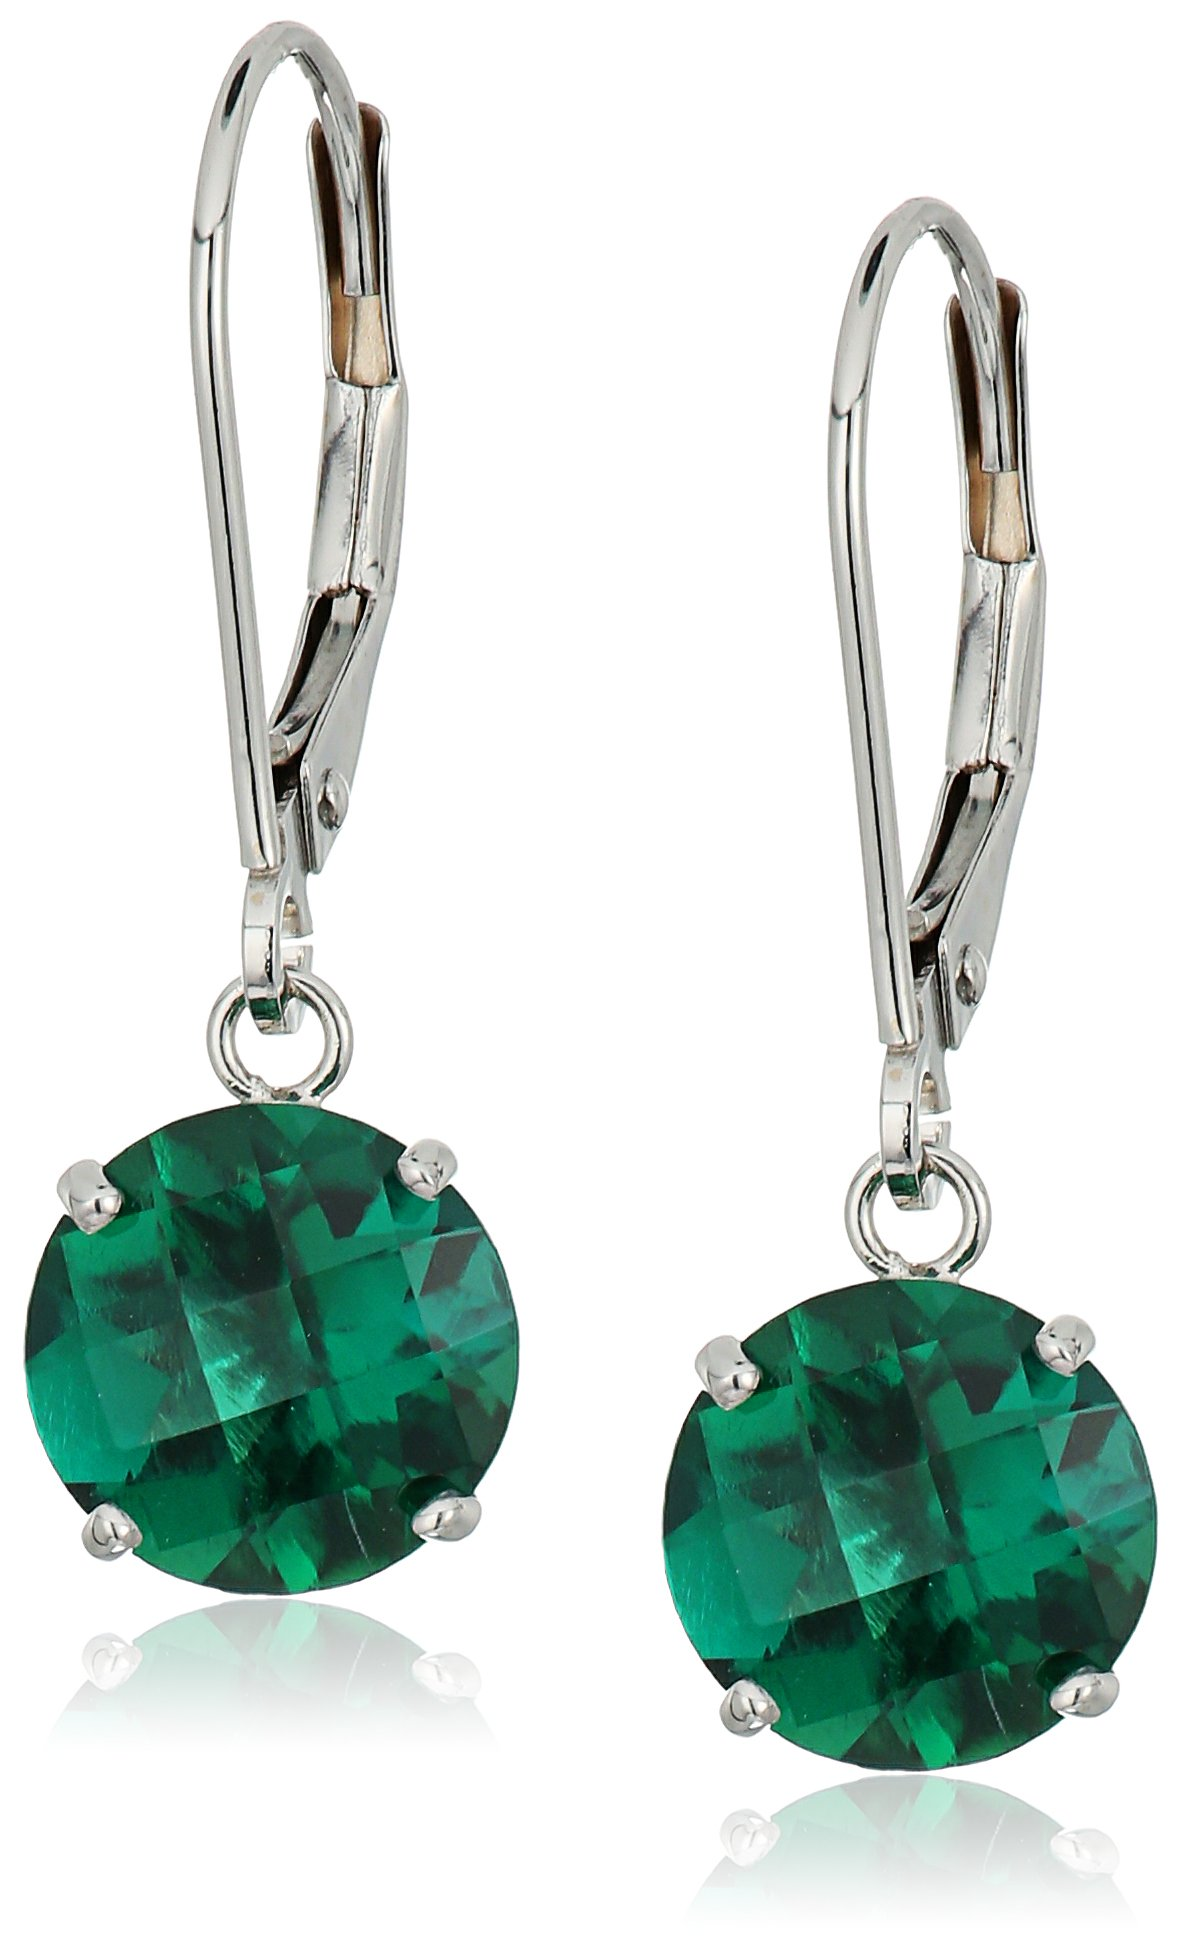 10k White Gold Round Checkerboard Cut Created Emerald Leverback Earrings (8mm)